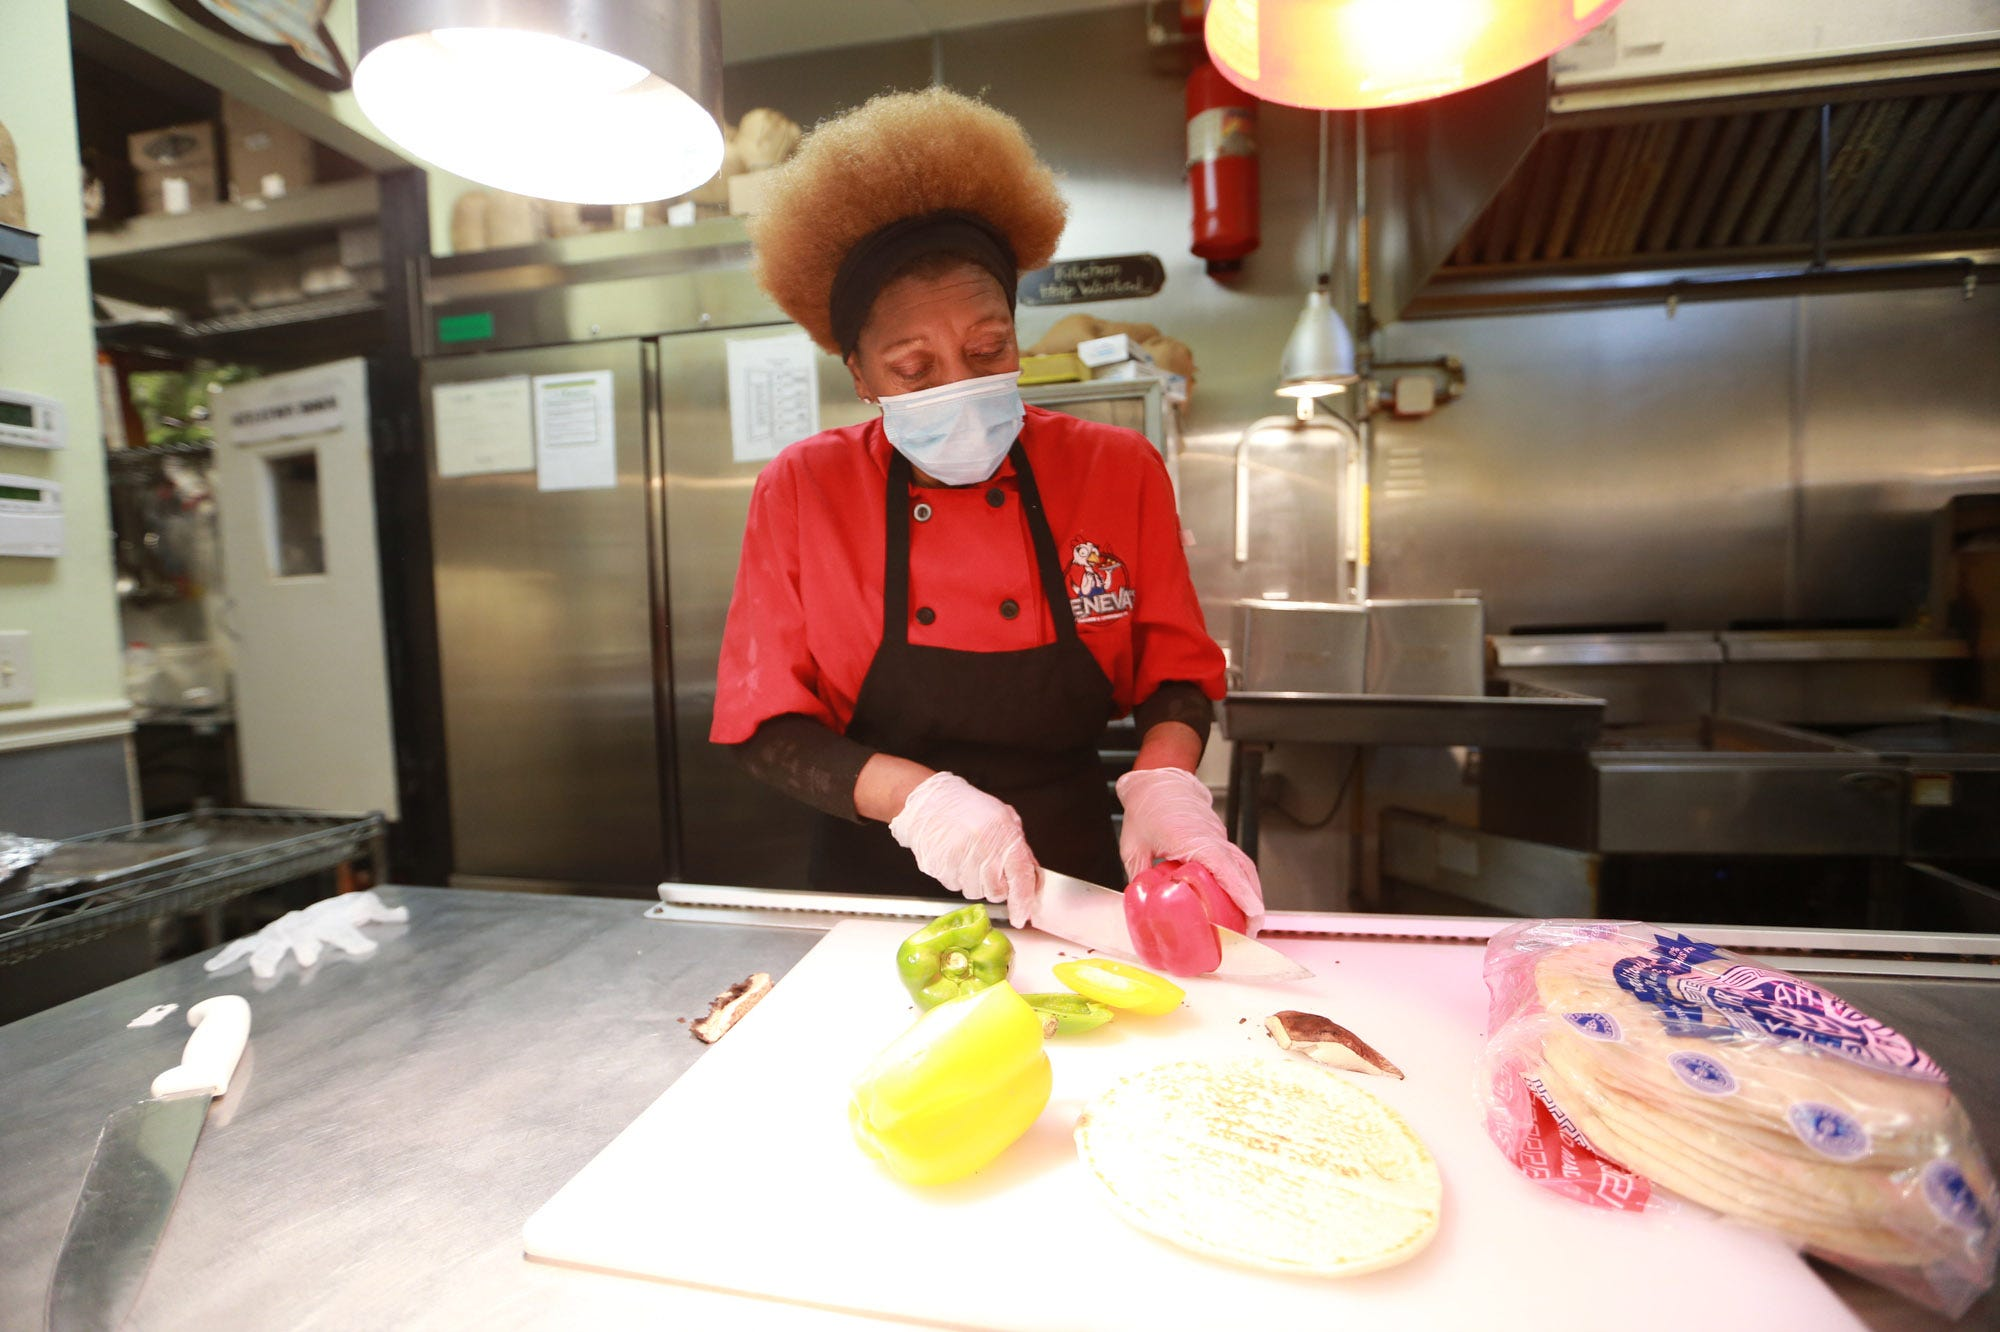 Geneva Wade slices veggies at Geneva's Famous Chicken and Cornbread Co. located in the Victory Square Shopping Center in Savannah.